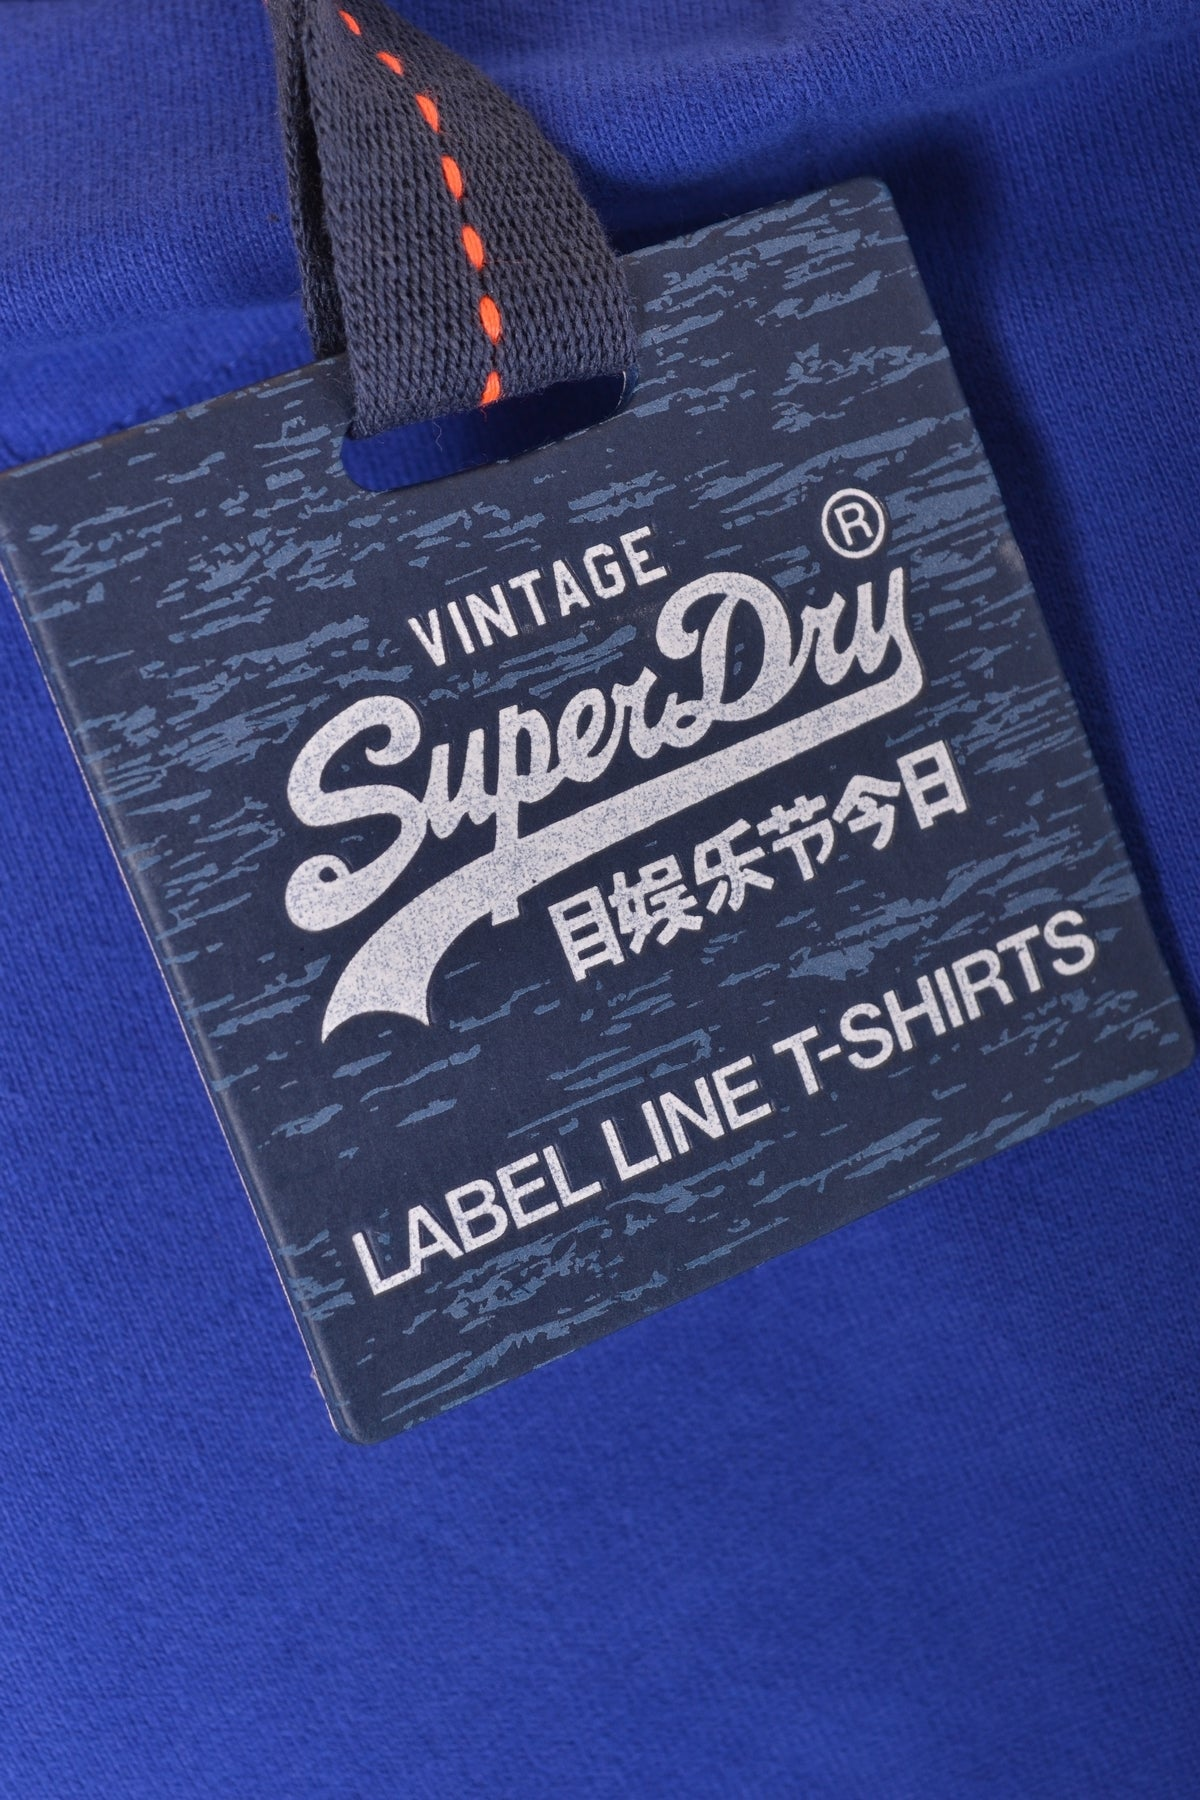 T-Shirt Superdry-Men's Fashion - Men's Clothing - Tops & Tees - T-Shirts-Product Details Year: 2017Composition: Cotton 100%Size: IntGender: ManMade In: TurcheySeason: Spring / SummerMain Color: BlueClothing Type: T-ShirtTerms: New With Label-Keyomi-Sook